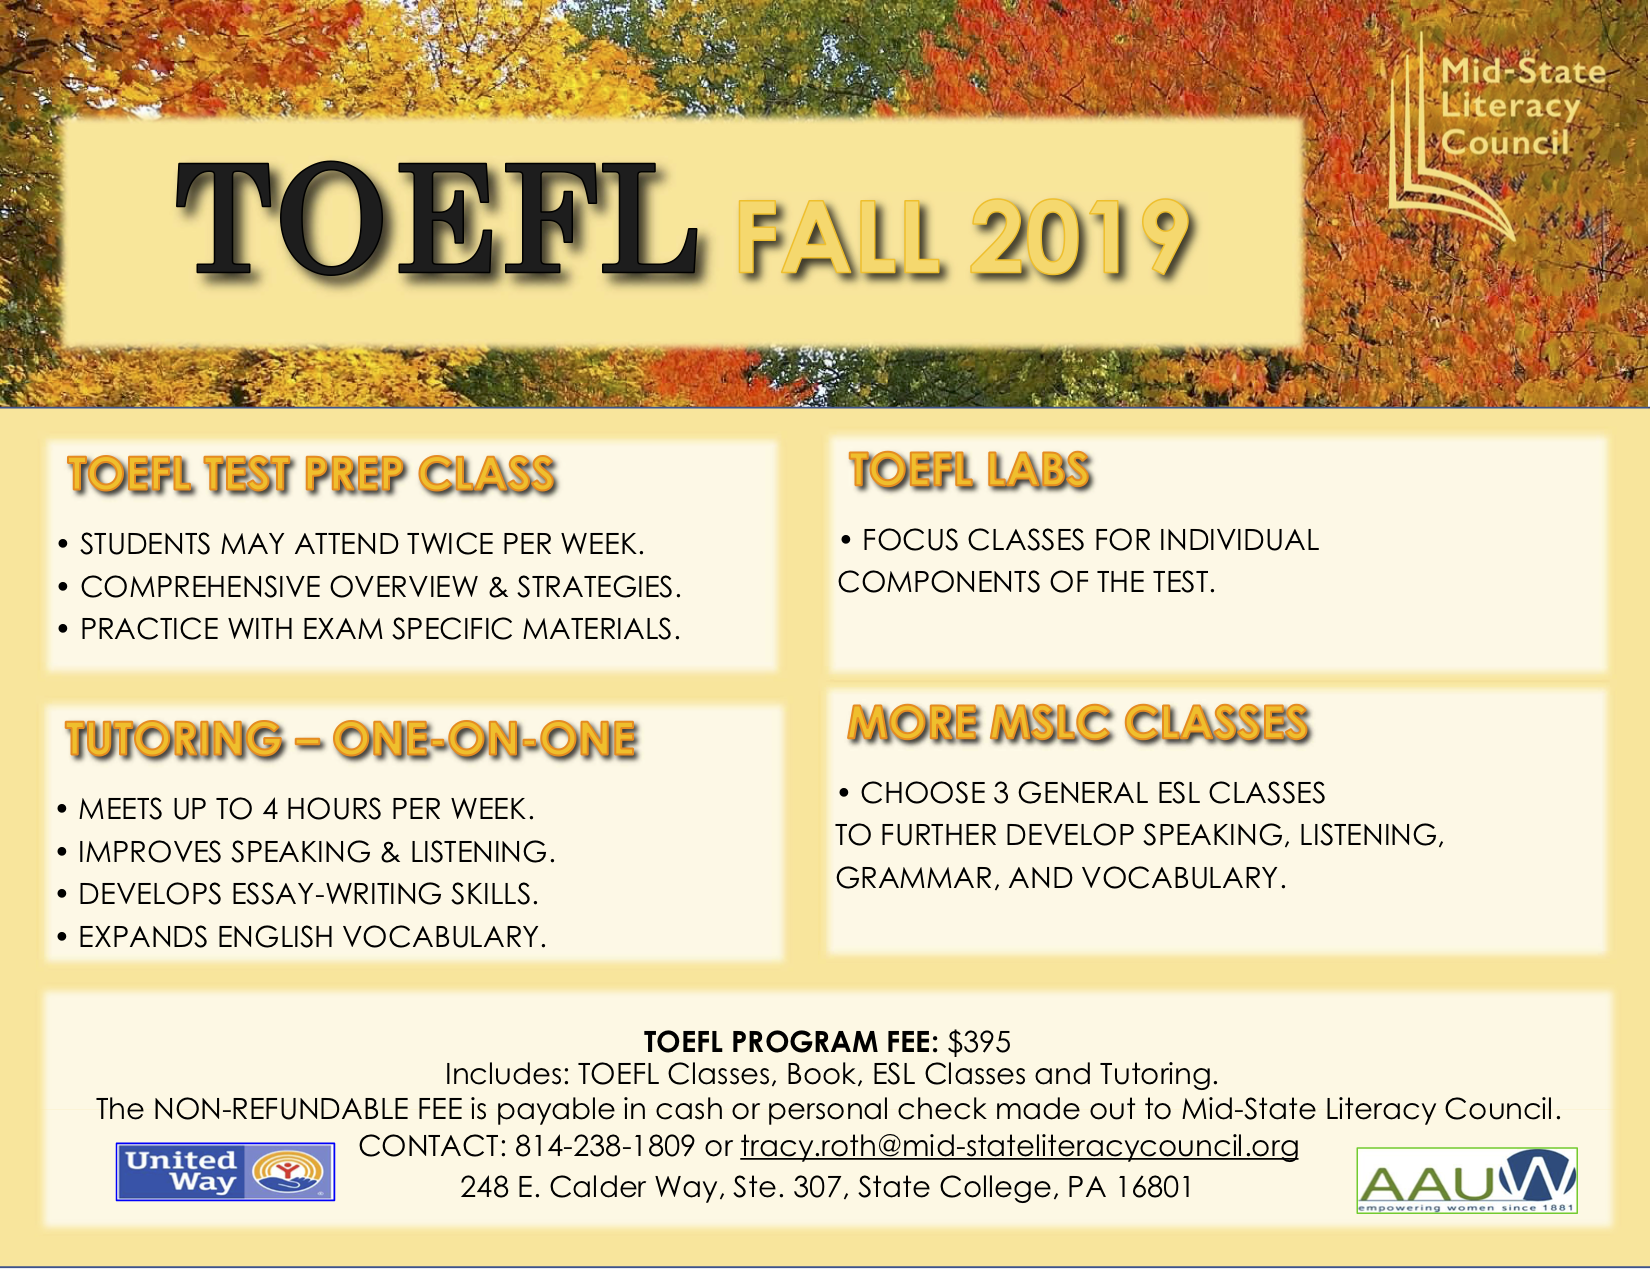 TOEFL - Mid-State Literacy Council